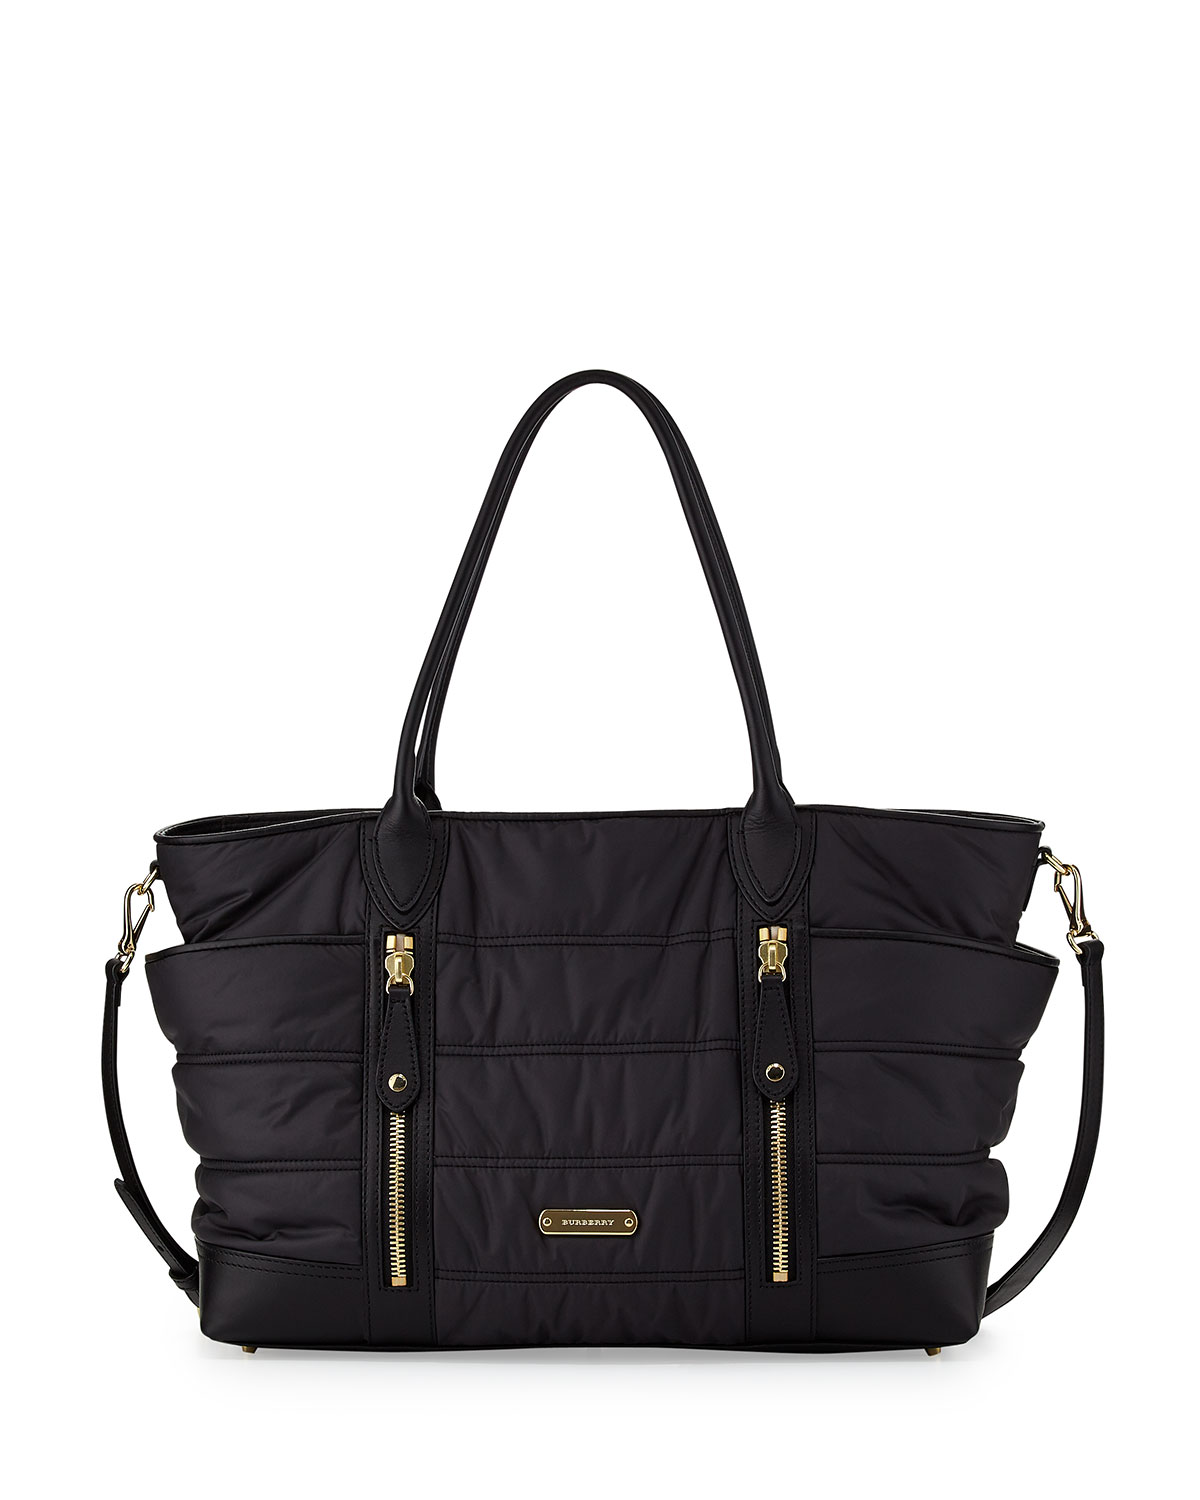 Quilted Nylon Diaper Bag Black